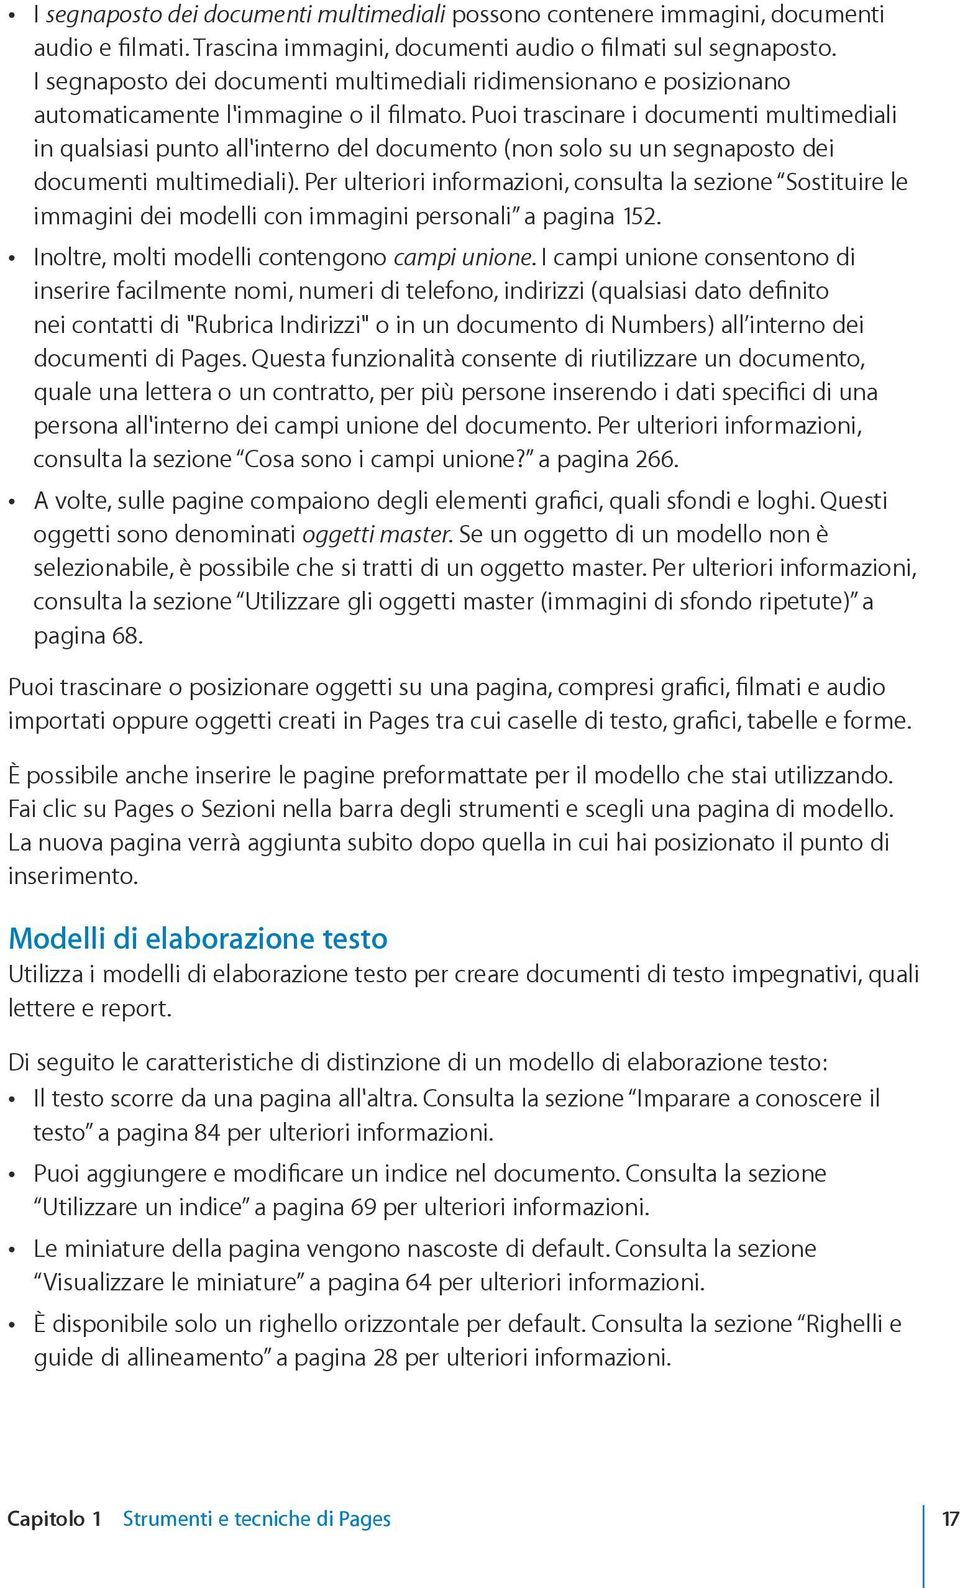 Puoi trascinare i documenti multimediali in qualsiasi punto all'interno del documento (non solo su un segnaposto dei documenti multimediali).